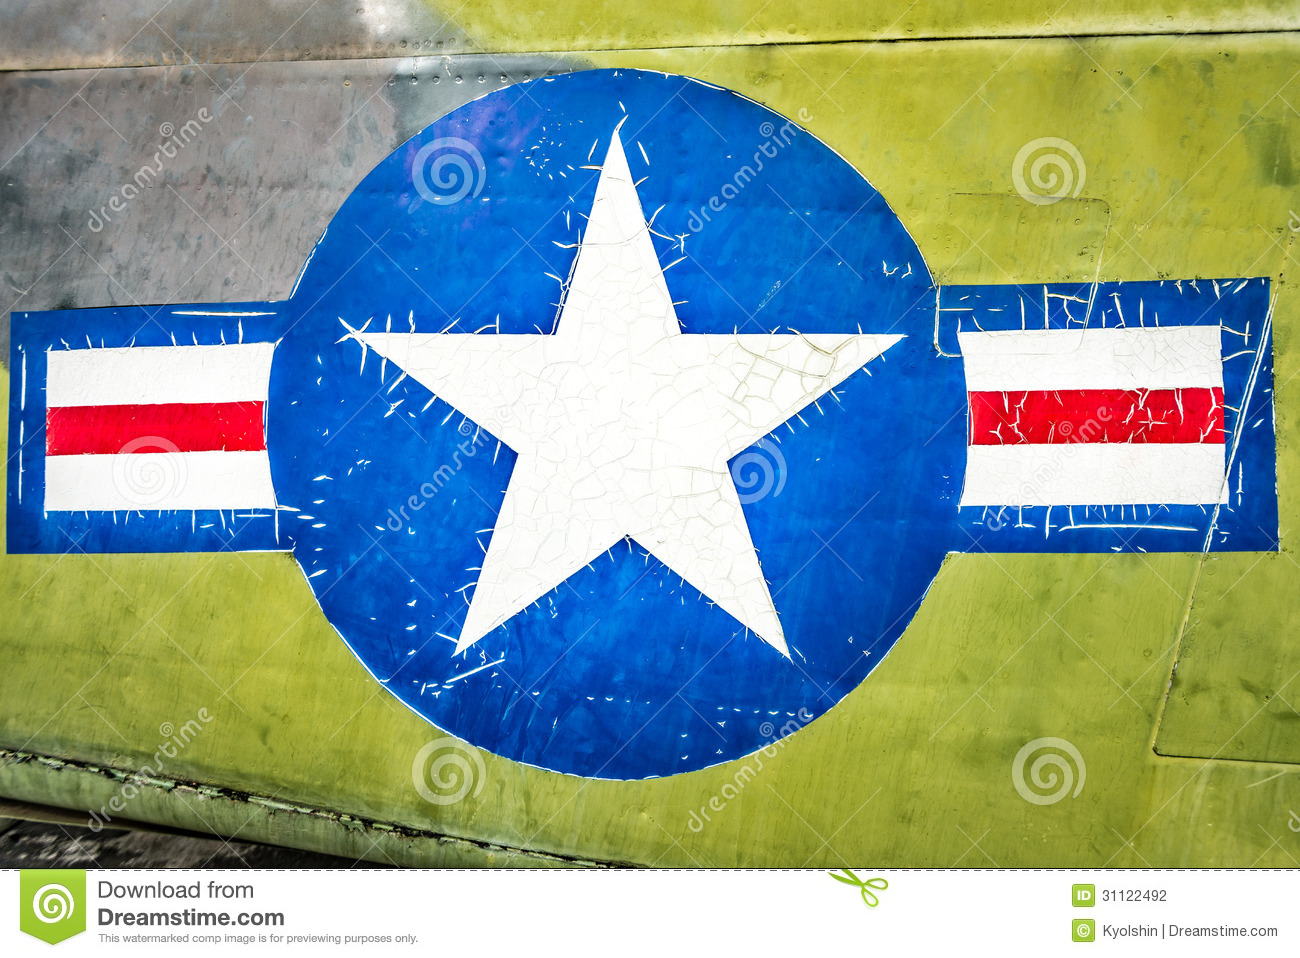 91b25220574 Military Plane With Star And Stripe Sign. Stock Photo - Image of ...